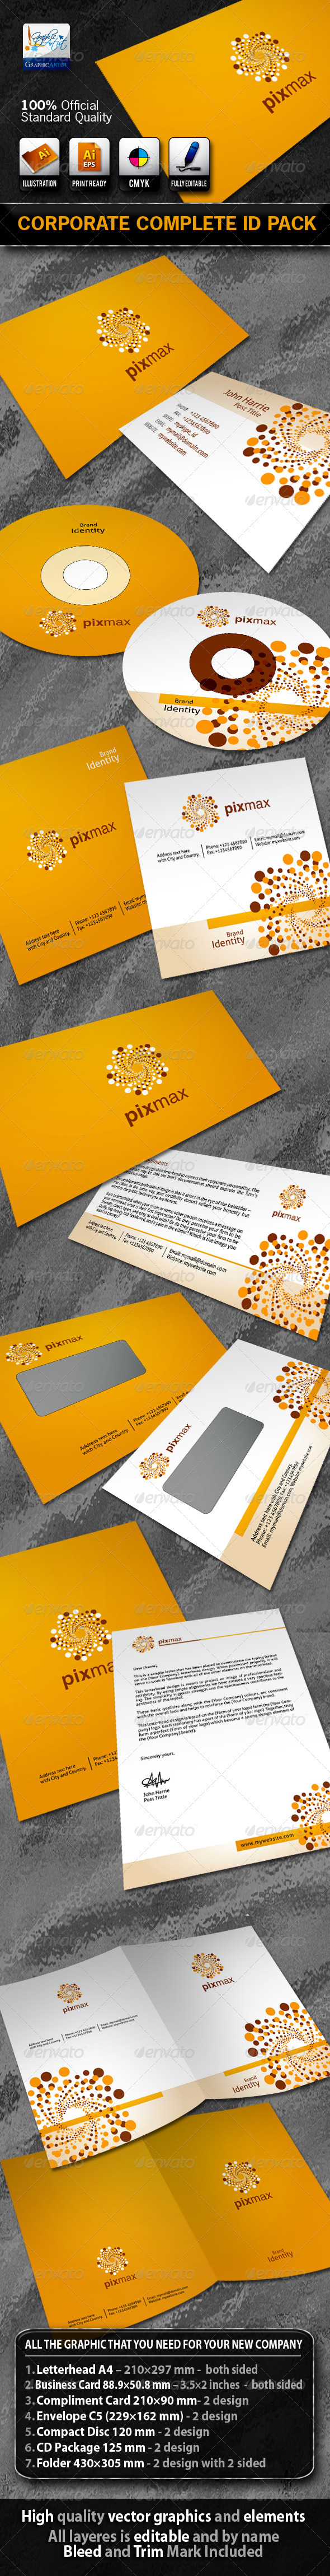 PixMax Business Corporate ID Pack With Logo - Stationery Print Templates